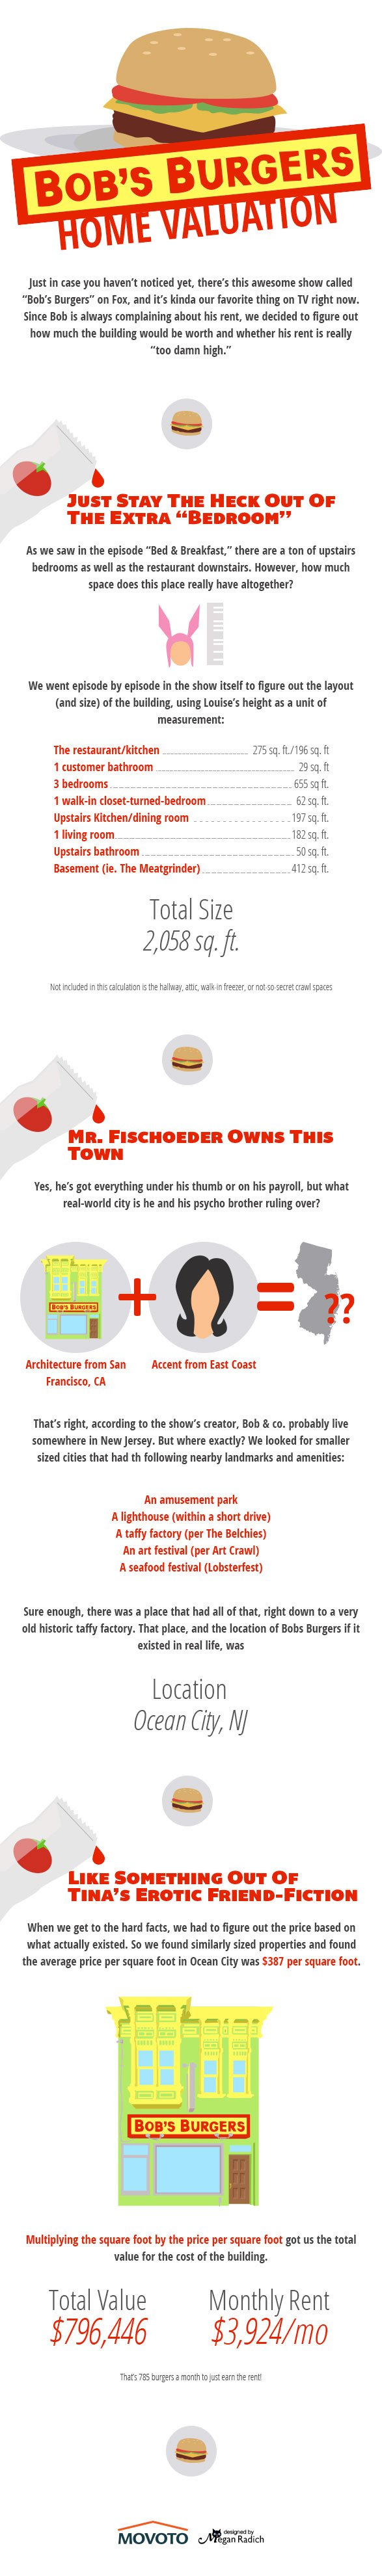 infographic-bobs-burgers